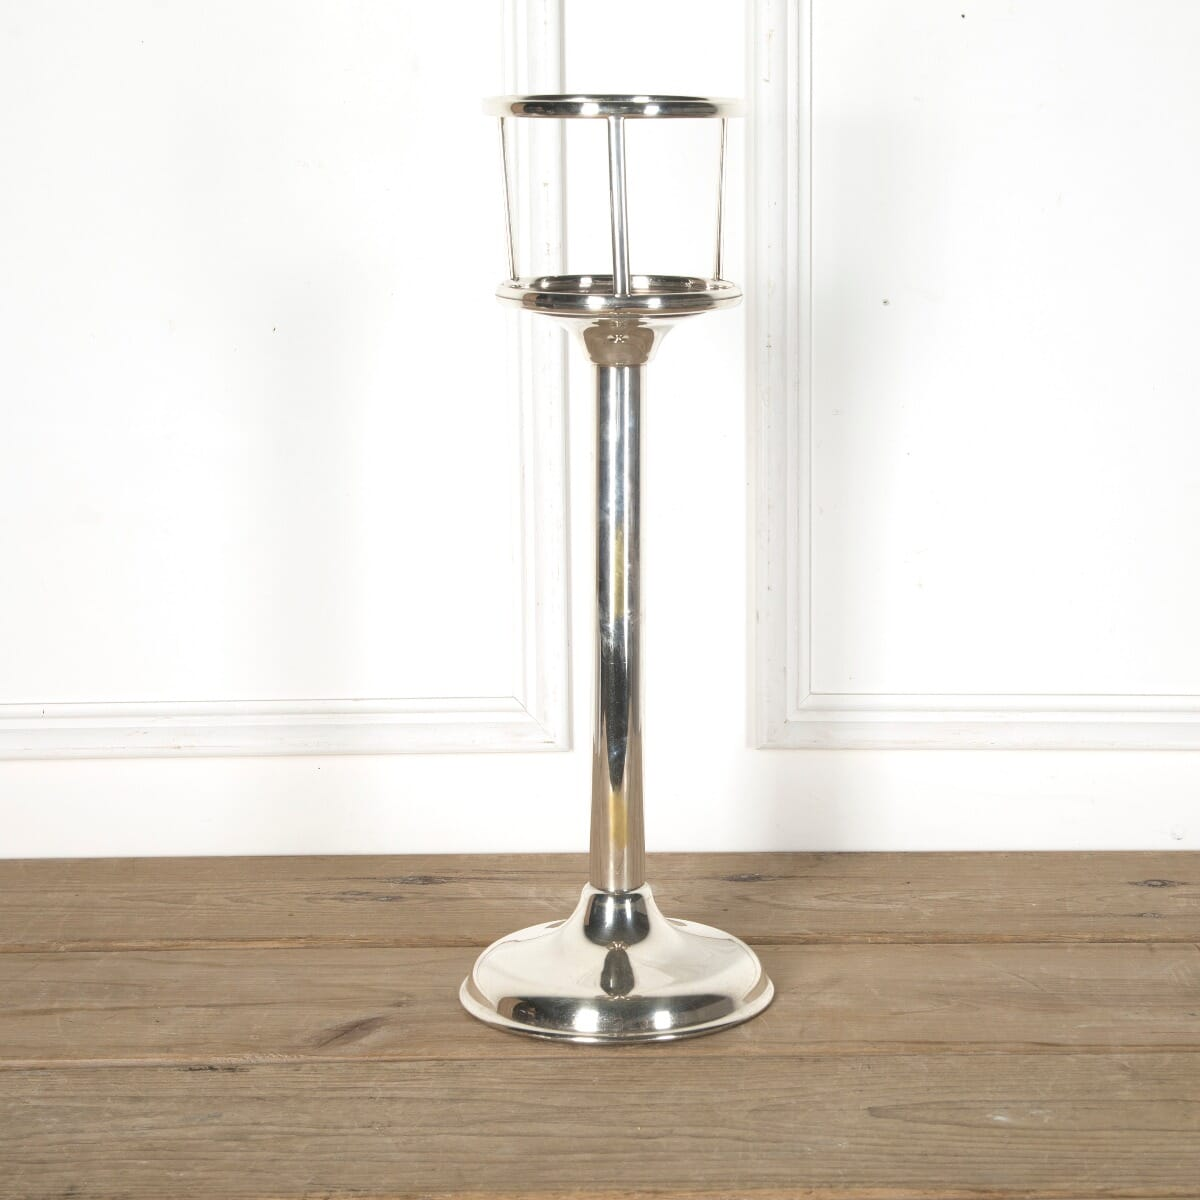 English Art Deco Period Ice Bucket Stand Lorfords Antiques